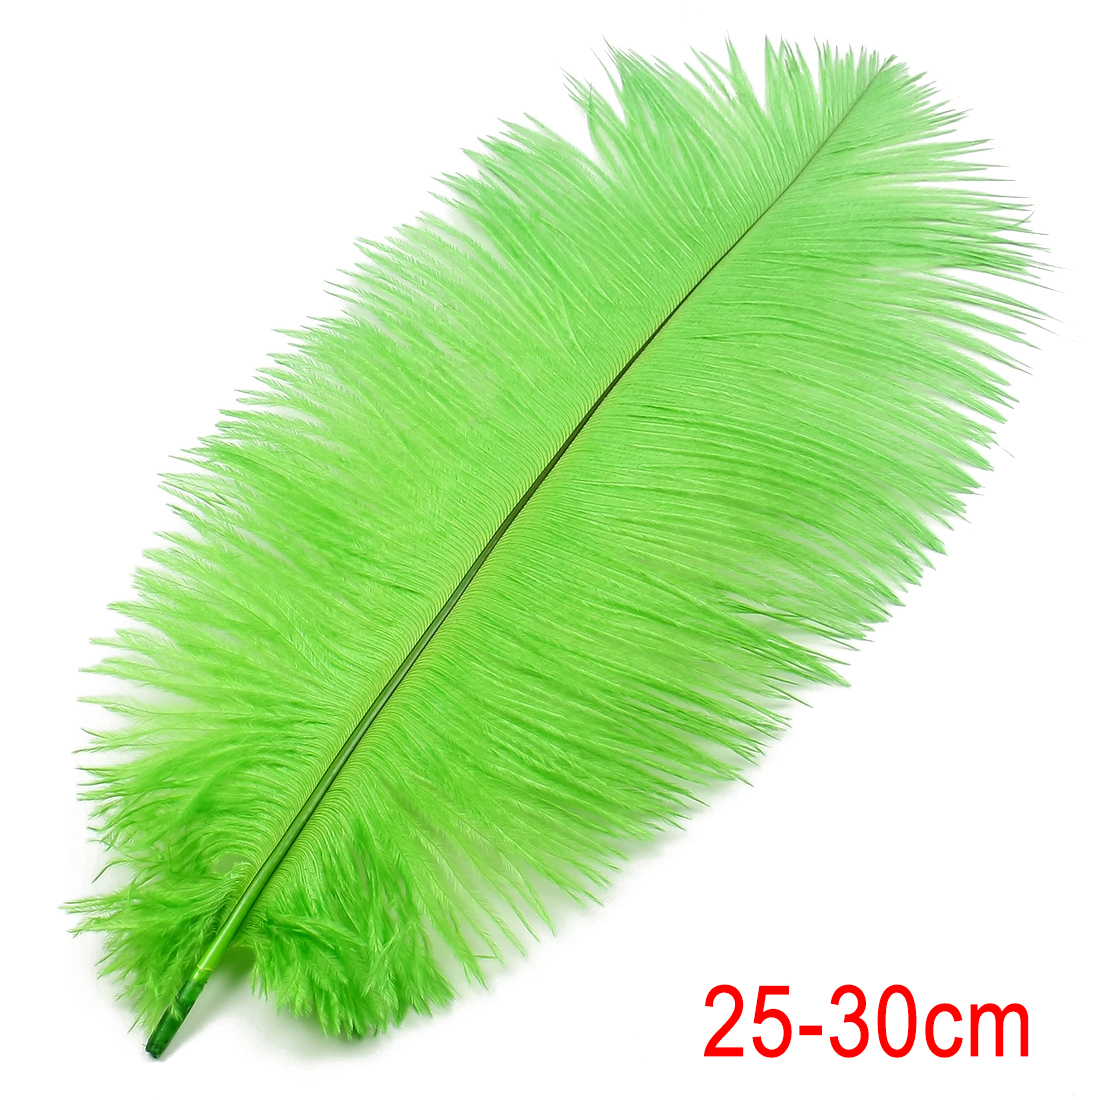 10-12 inch / 25-30cm Ostrich Feather for Wedding Party Decoration Green